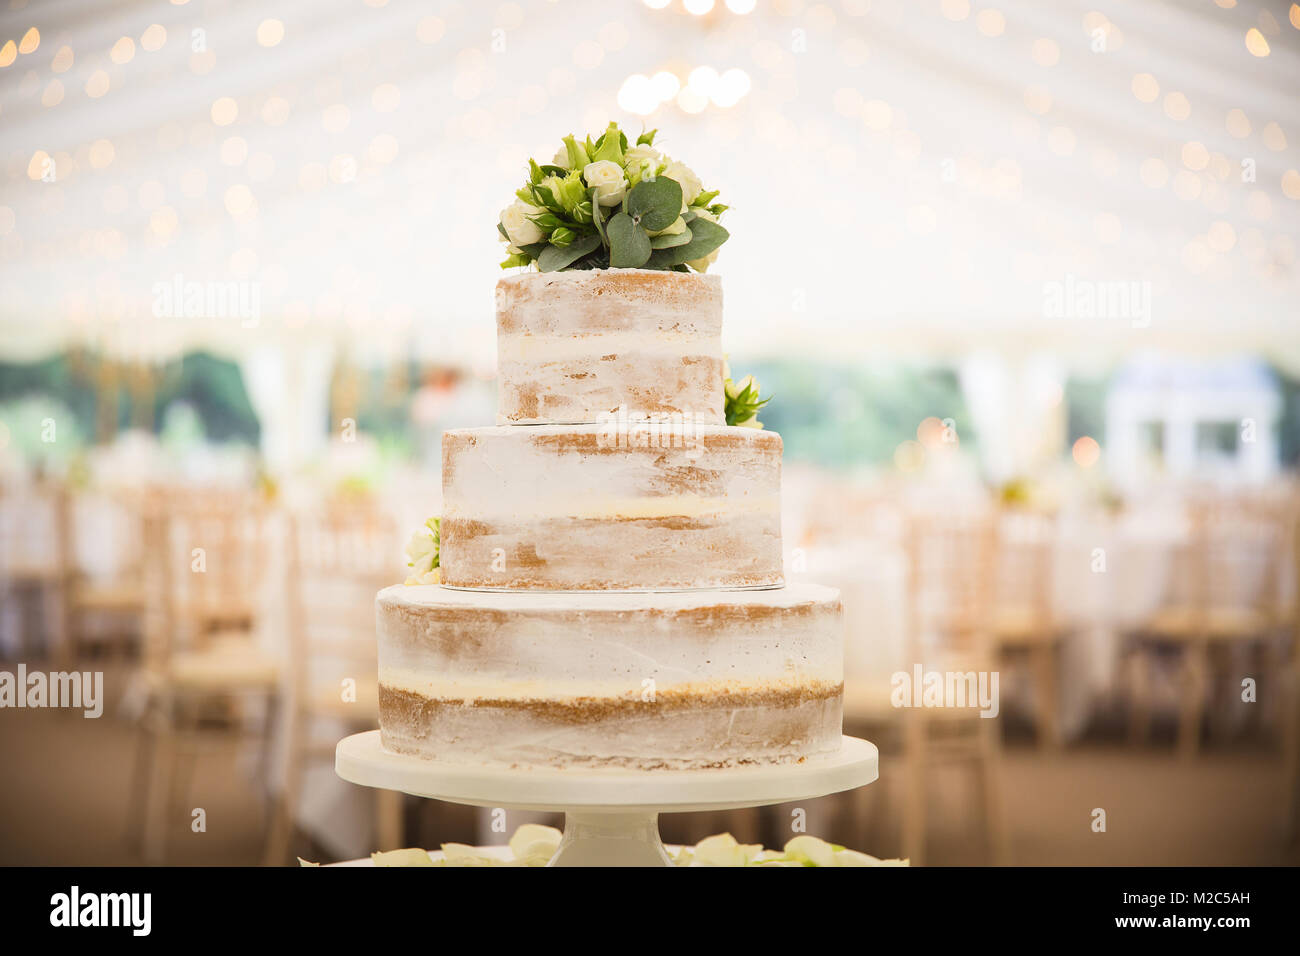 Three tiered wedding cake topped with flowers, in empty marquee - Stock Image